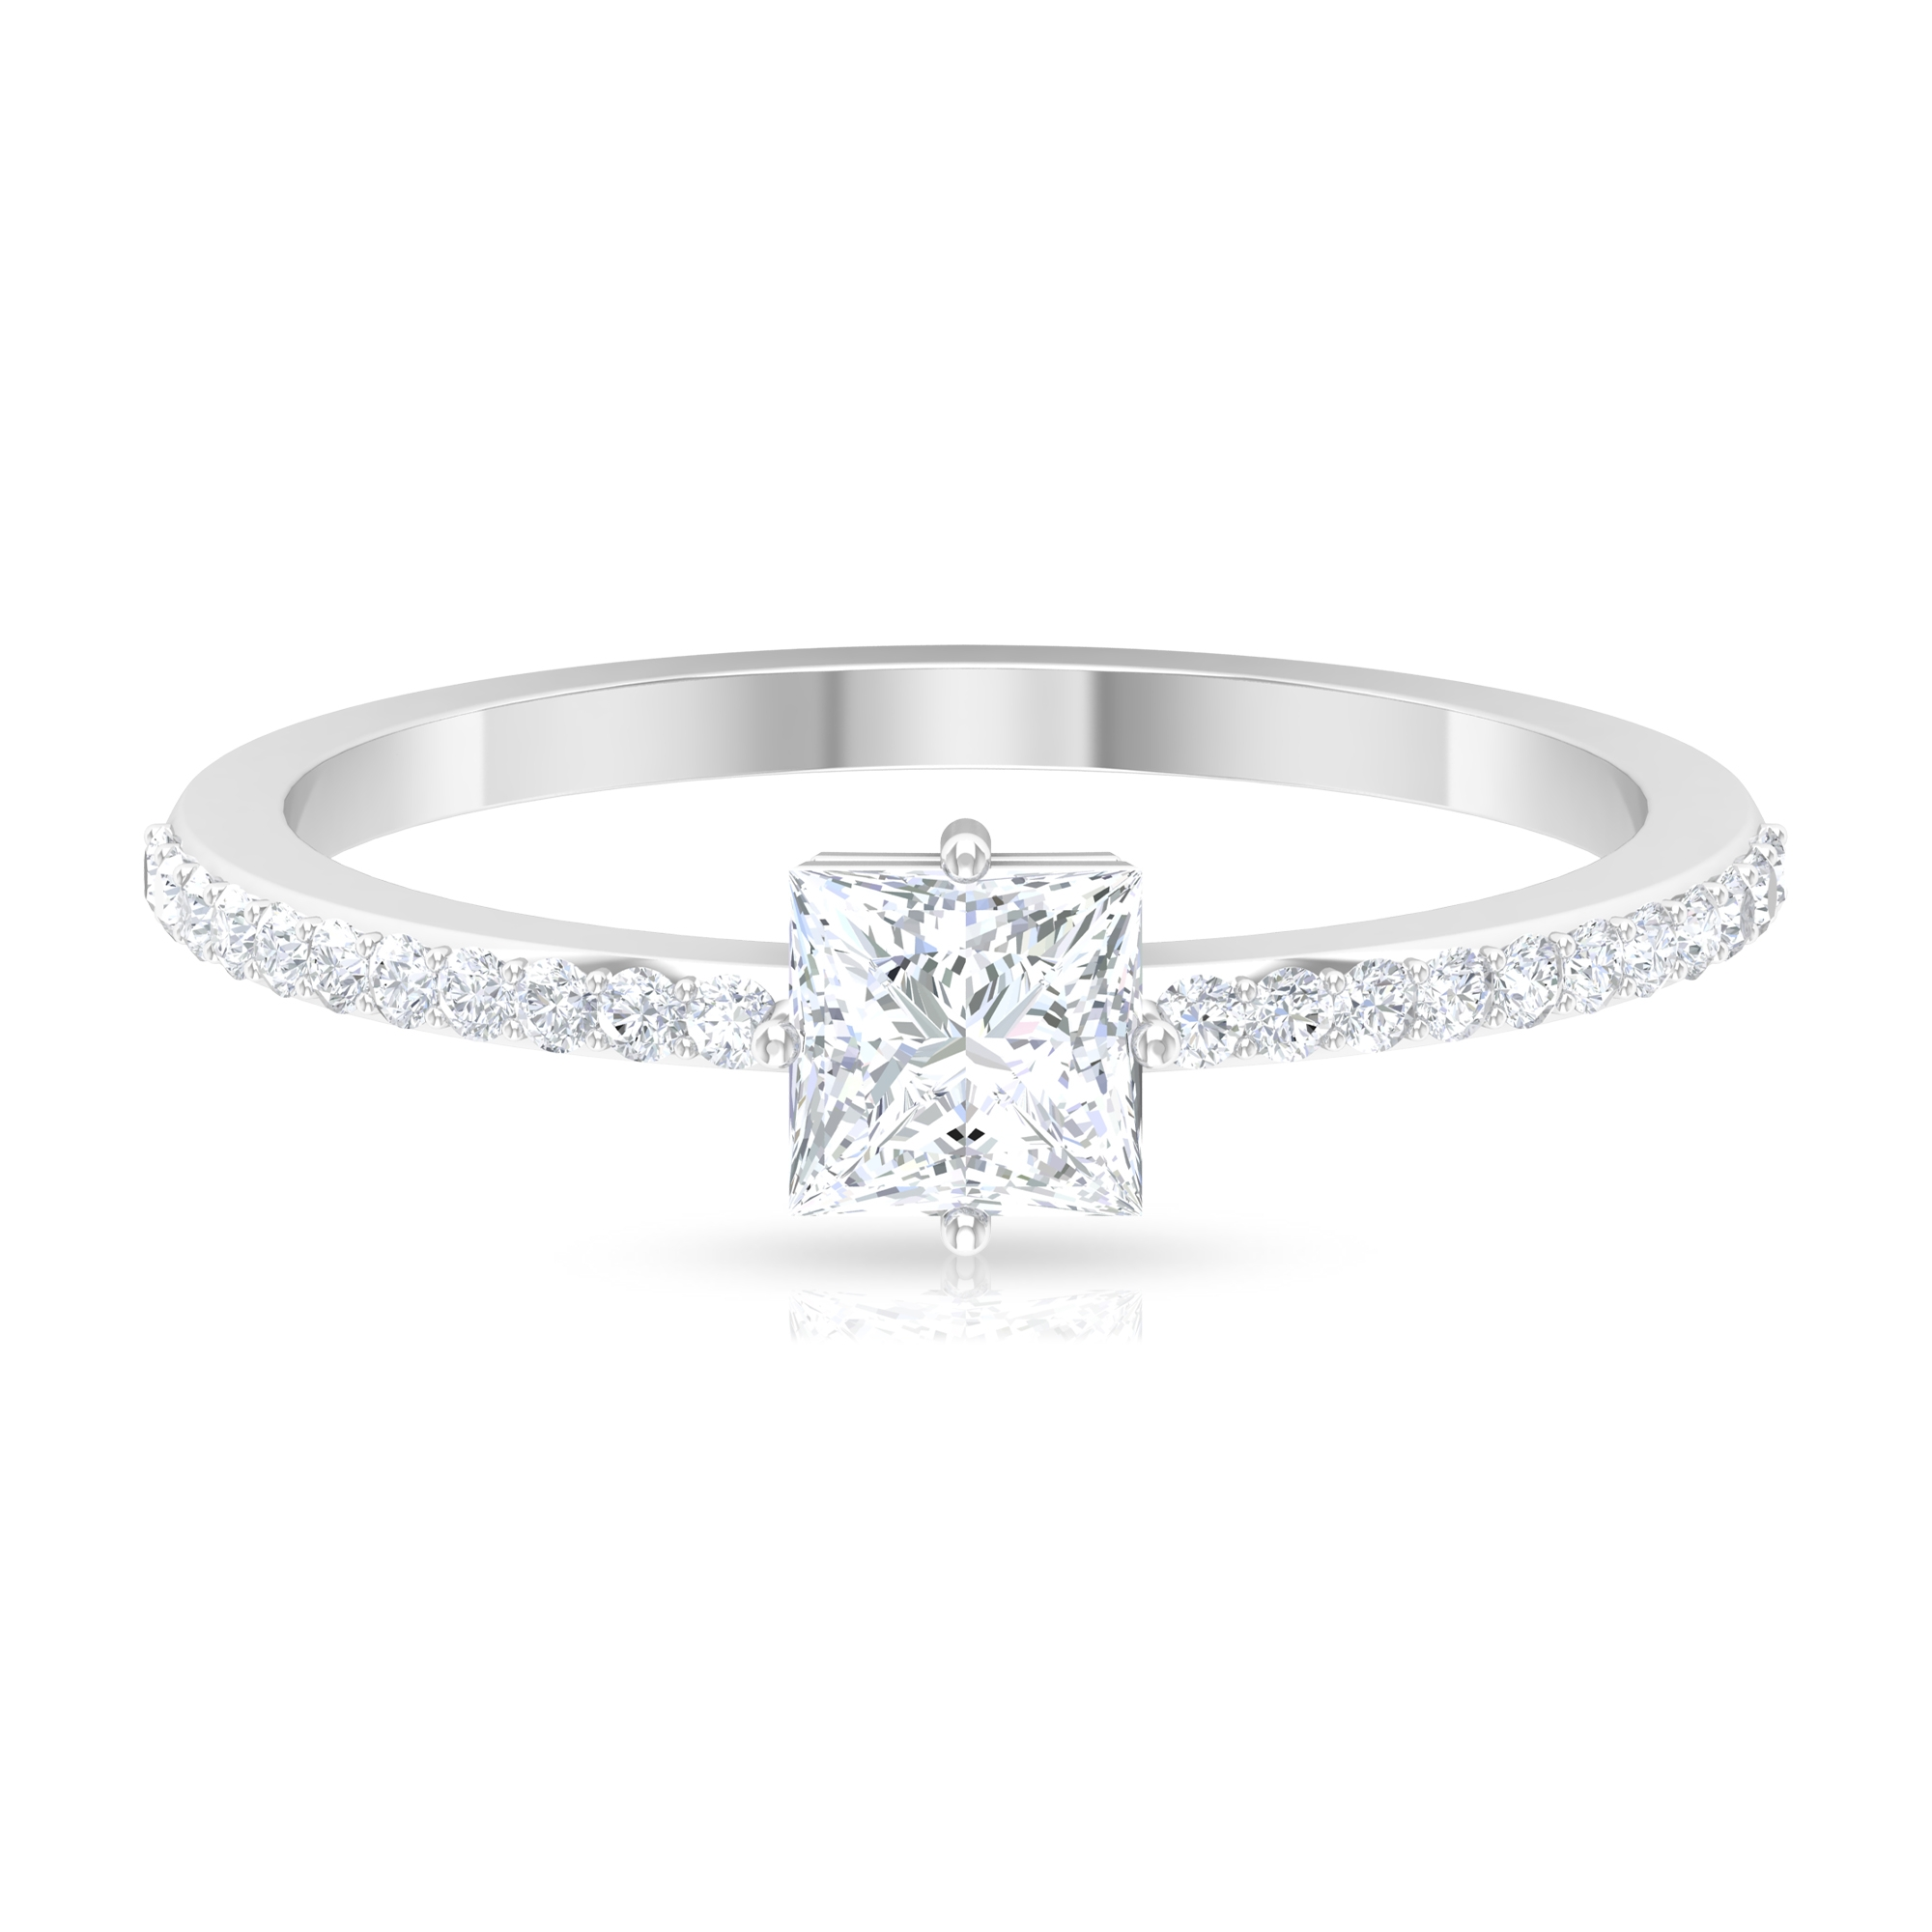 4.5X4.5 MM Princess Cut Solitaire Diamond Ring in 4 Prong Diagonal Setting with Side Stones